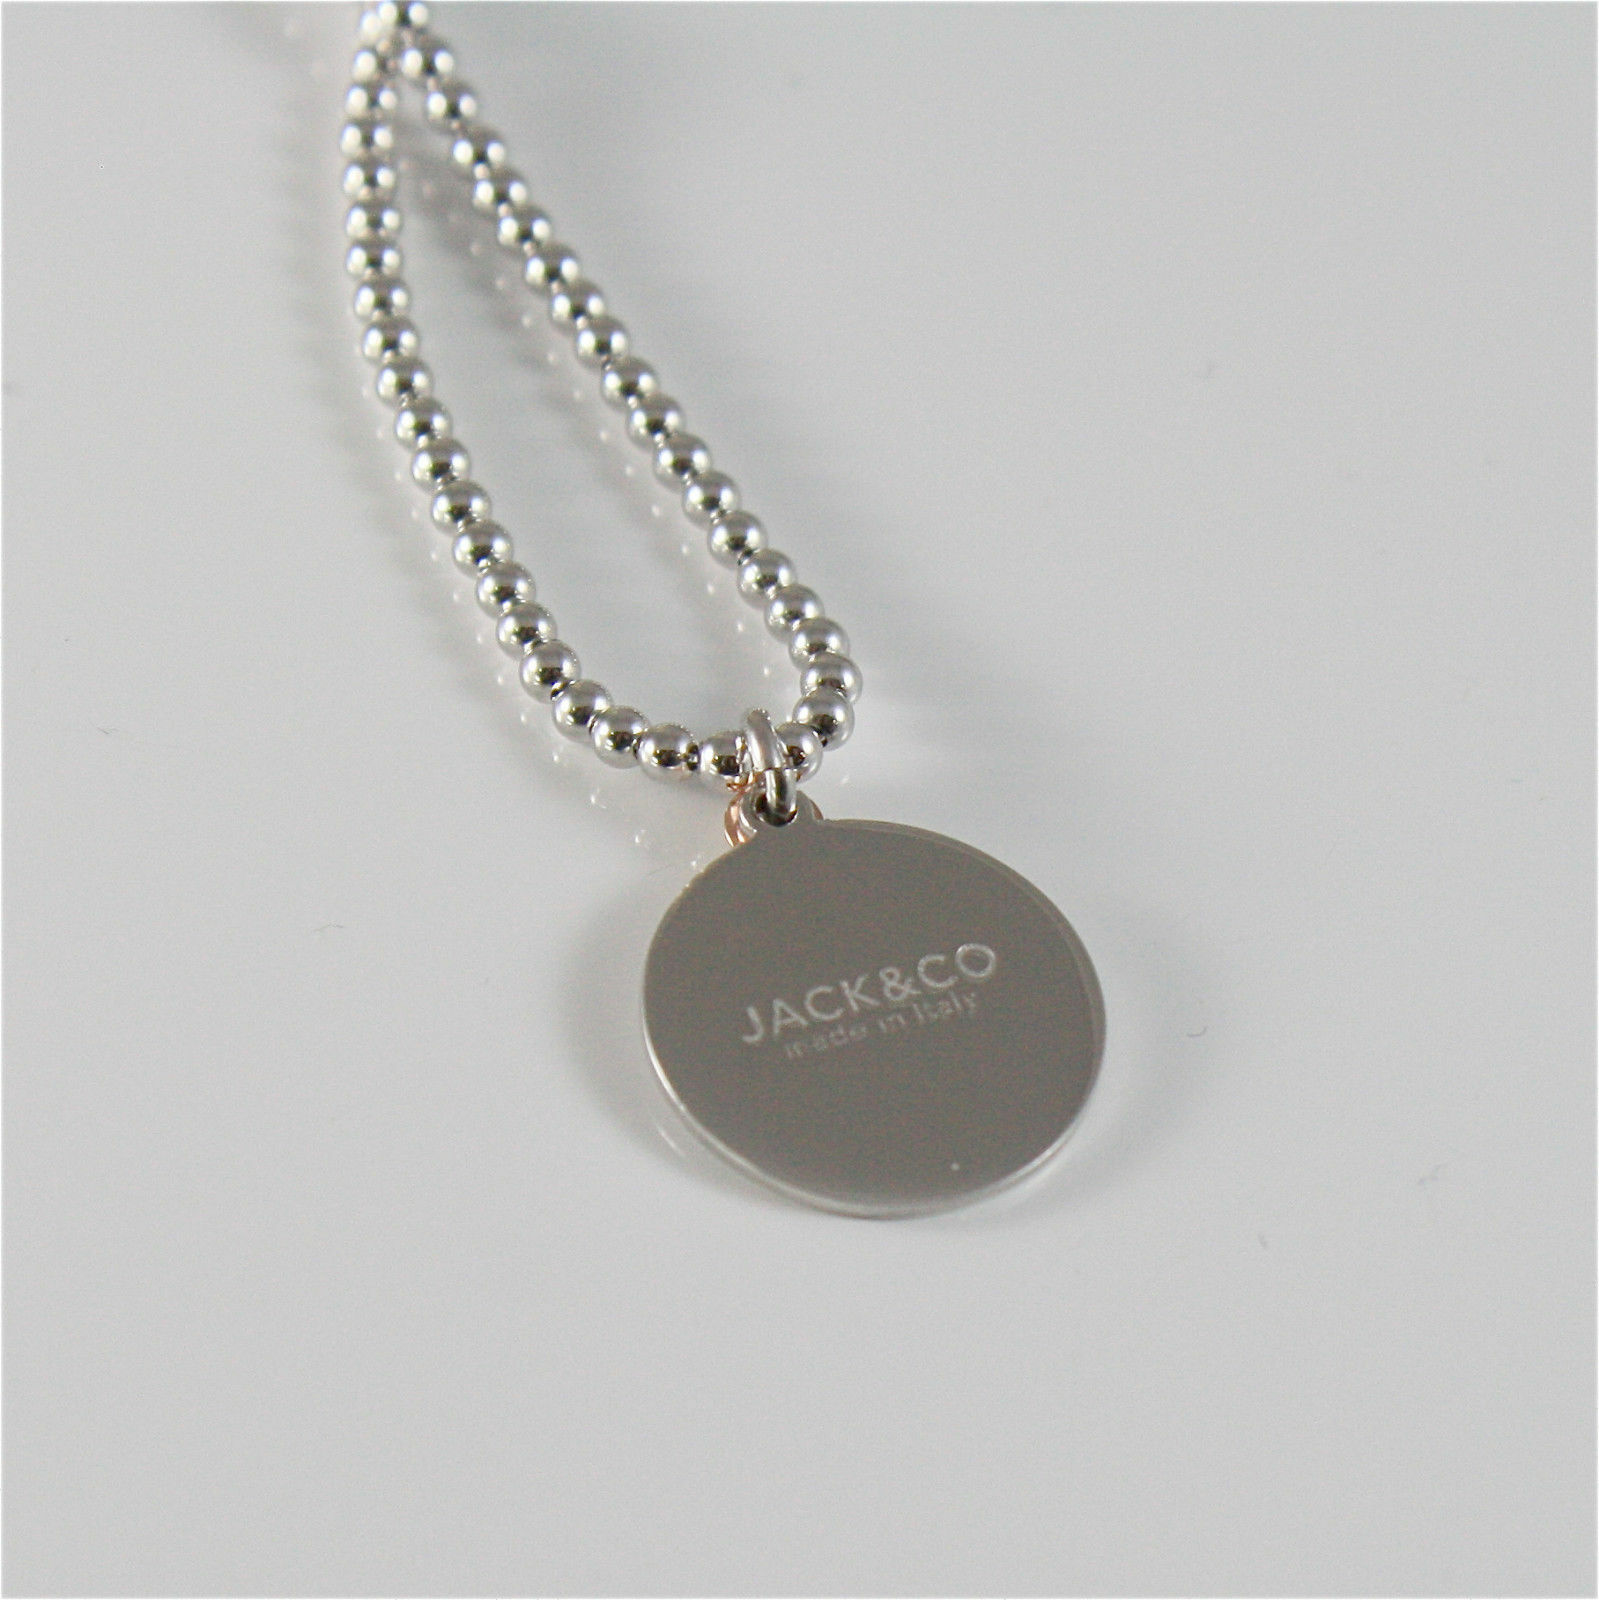 Necklace to Balls Silver 925 Jack&co with Infinity in Rose Gold 9KT JCN0548 image 4